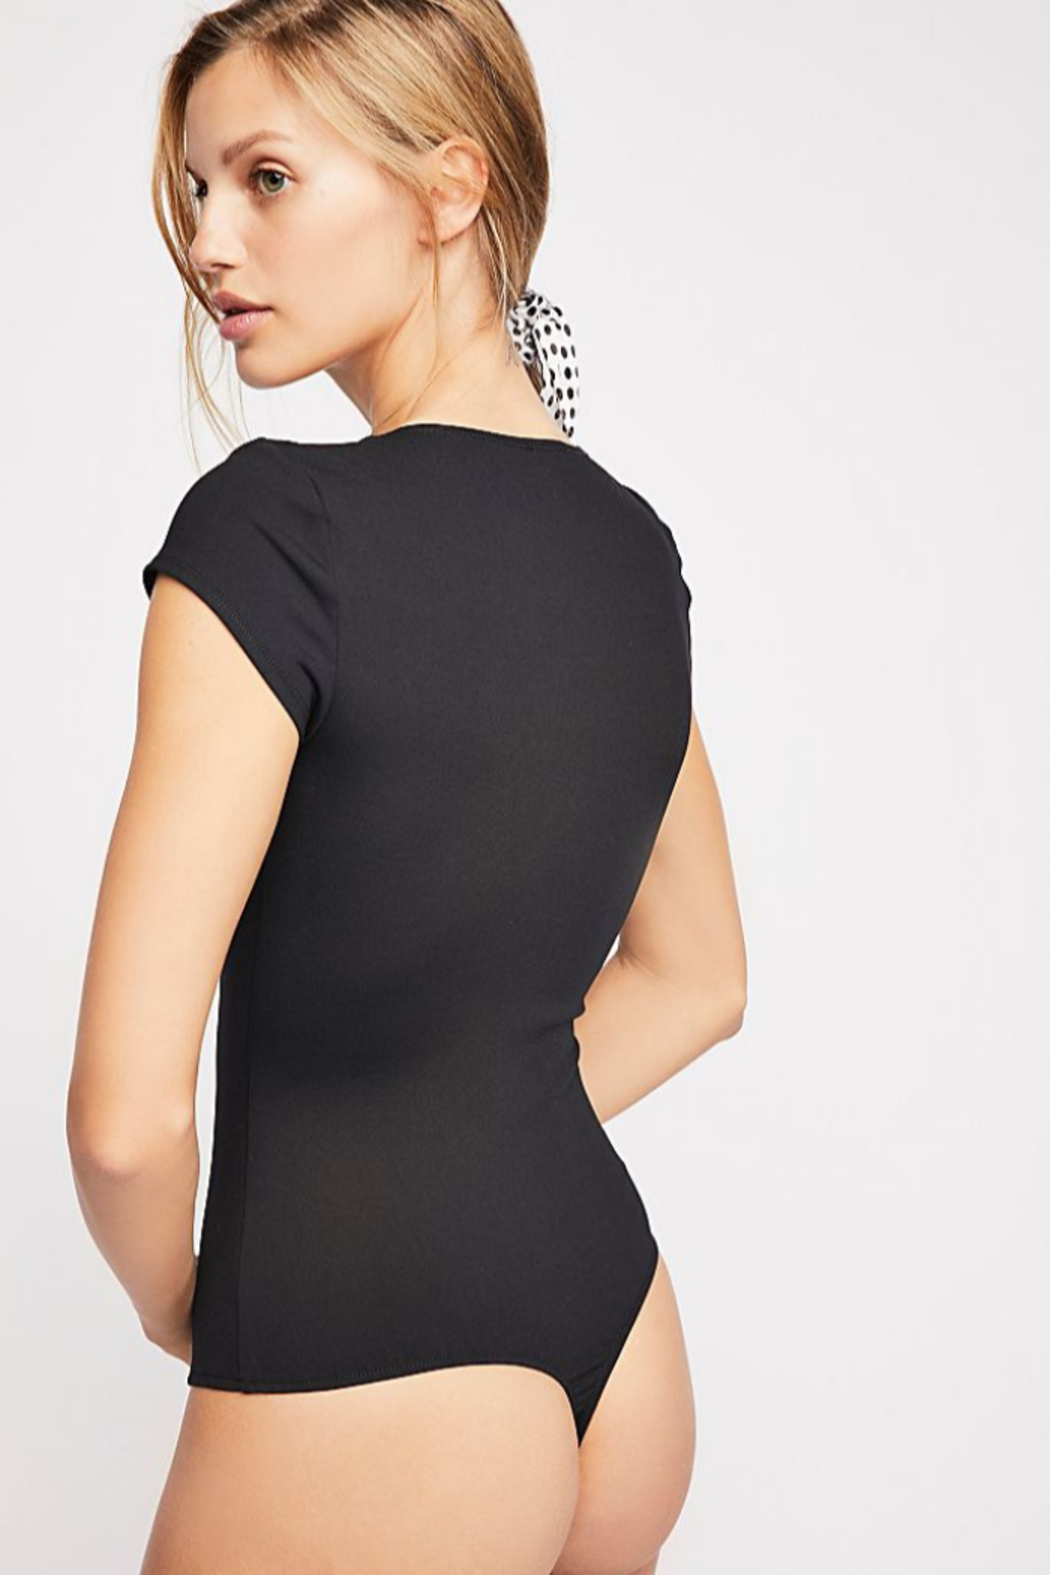 Free People Stretchy American made bodysuit featuring a square neckline. - Side Cropped Image